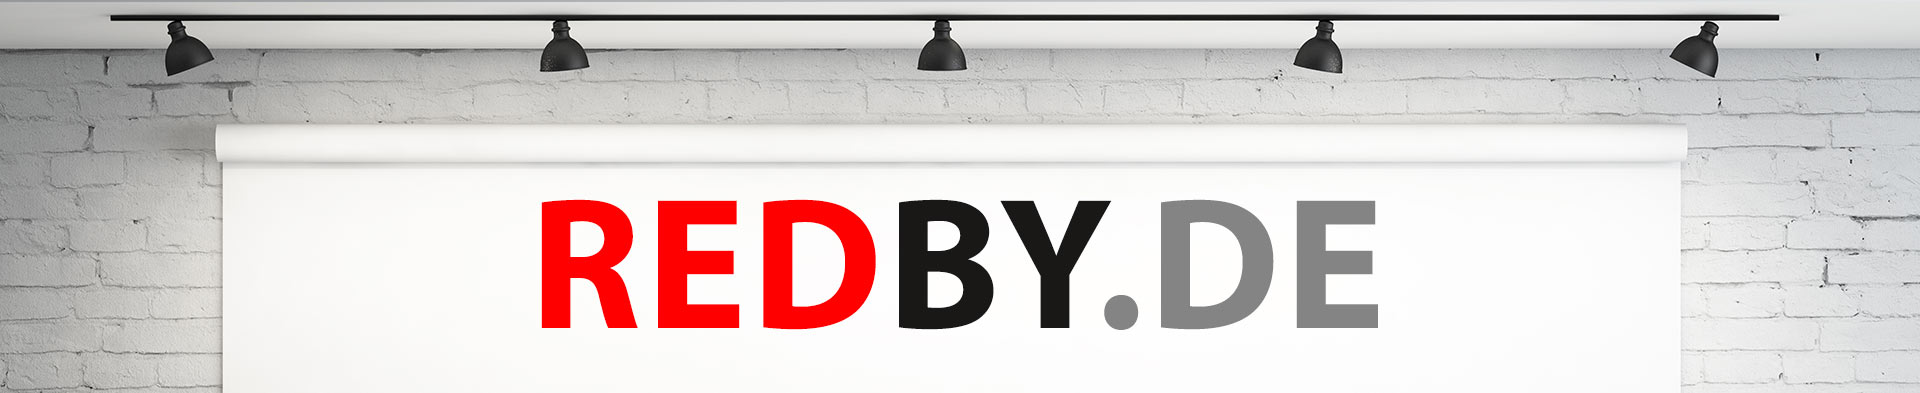 REDBY.DE : Editorial Marketing & Content : Blog